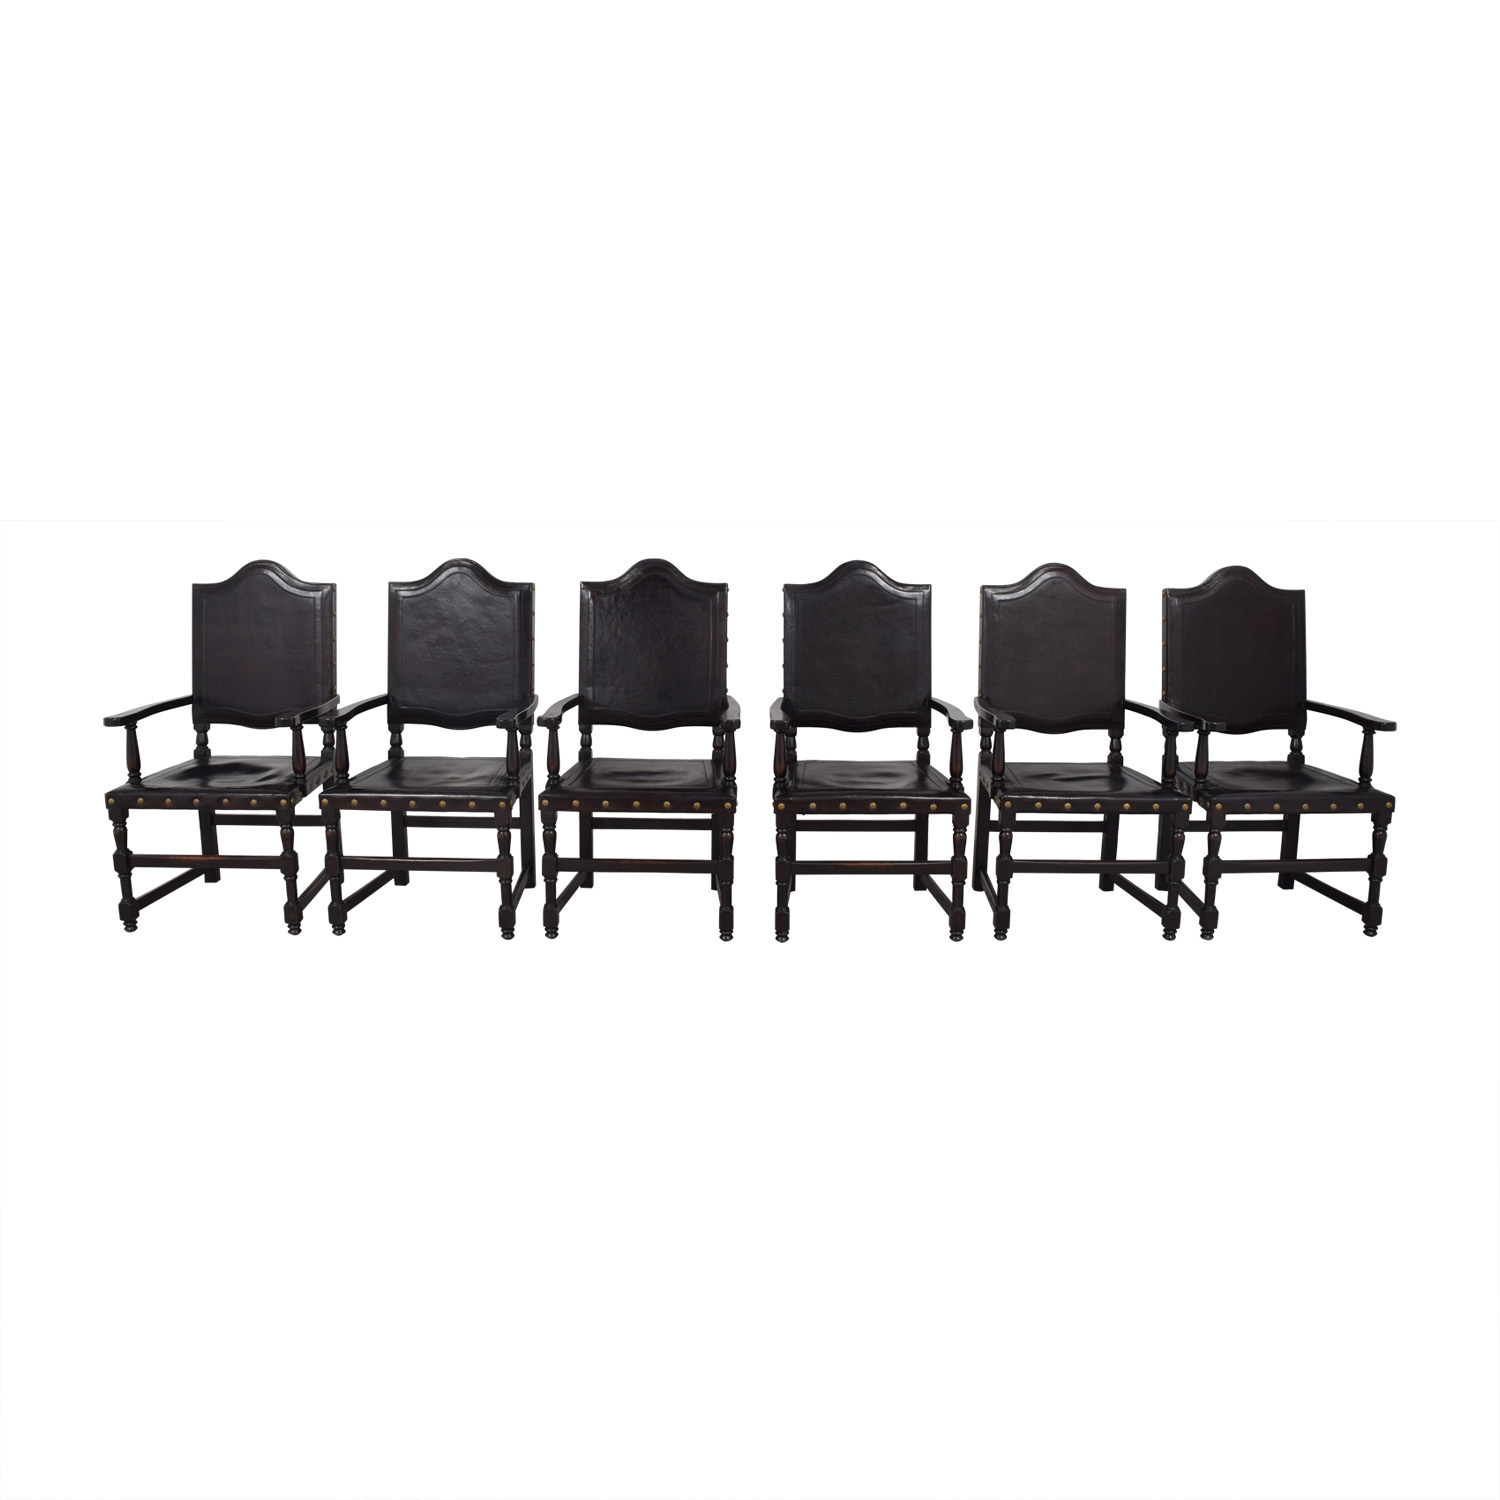 South Cone Furniture South Cone Furniture Dining Chairs price